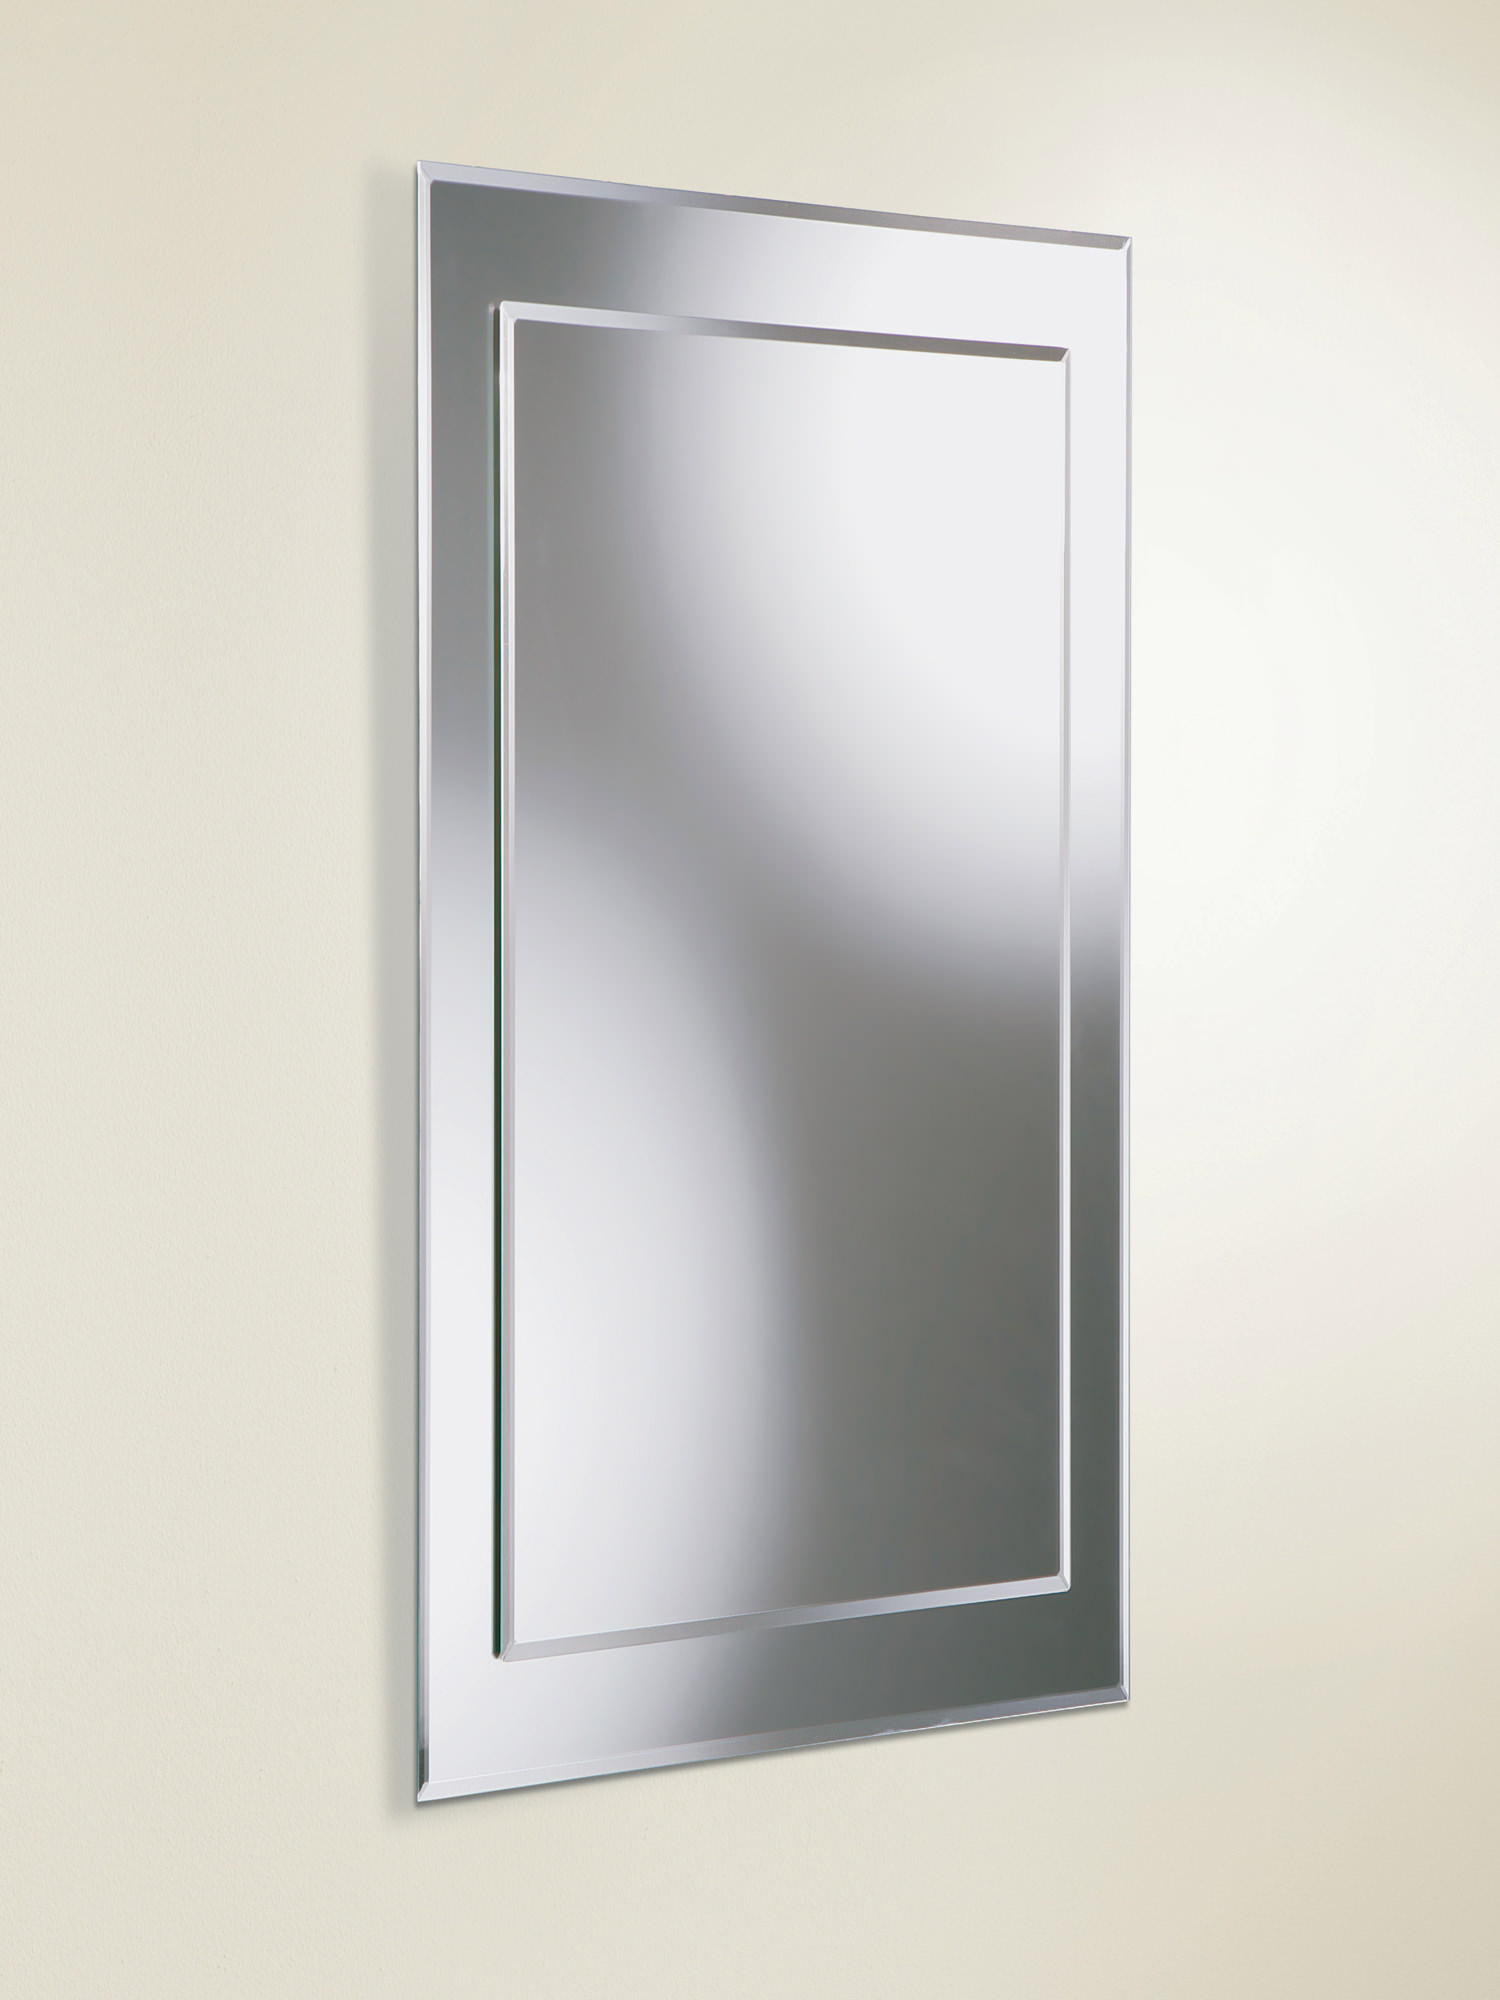 800mm bathroom mirror hib rectangular bevelled mirror on mirror 400 x 800mm 10052